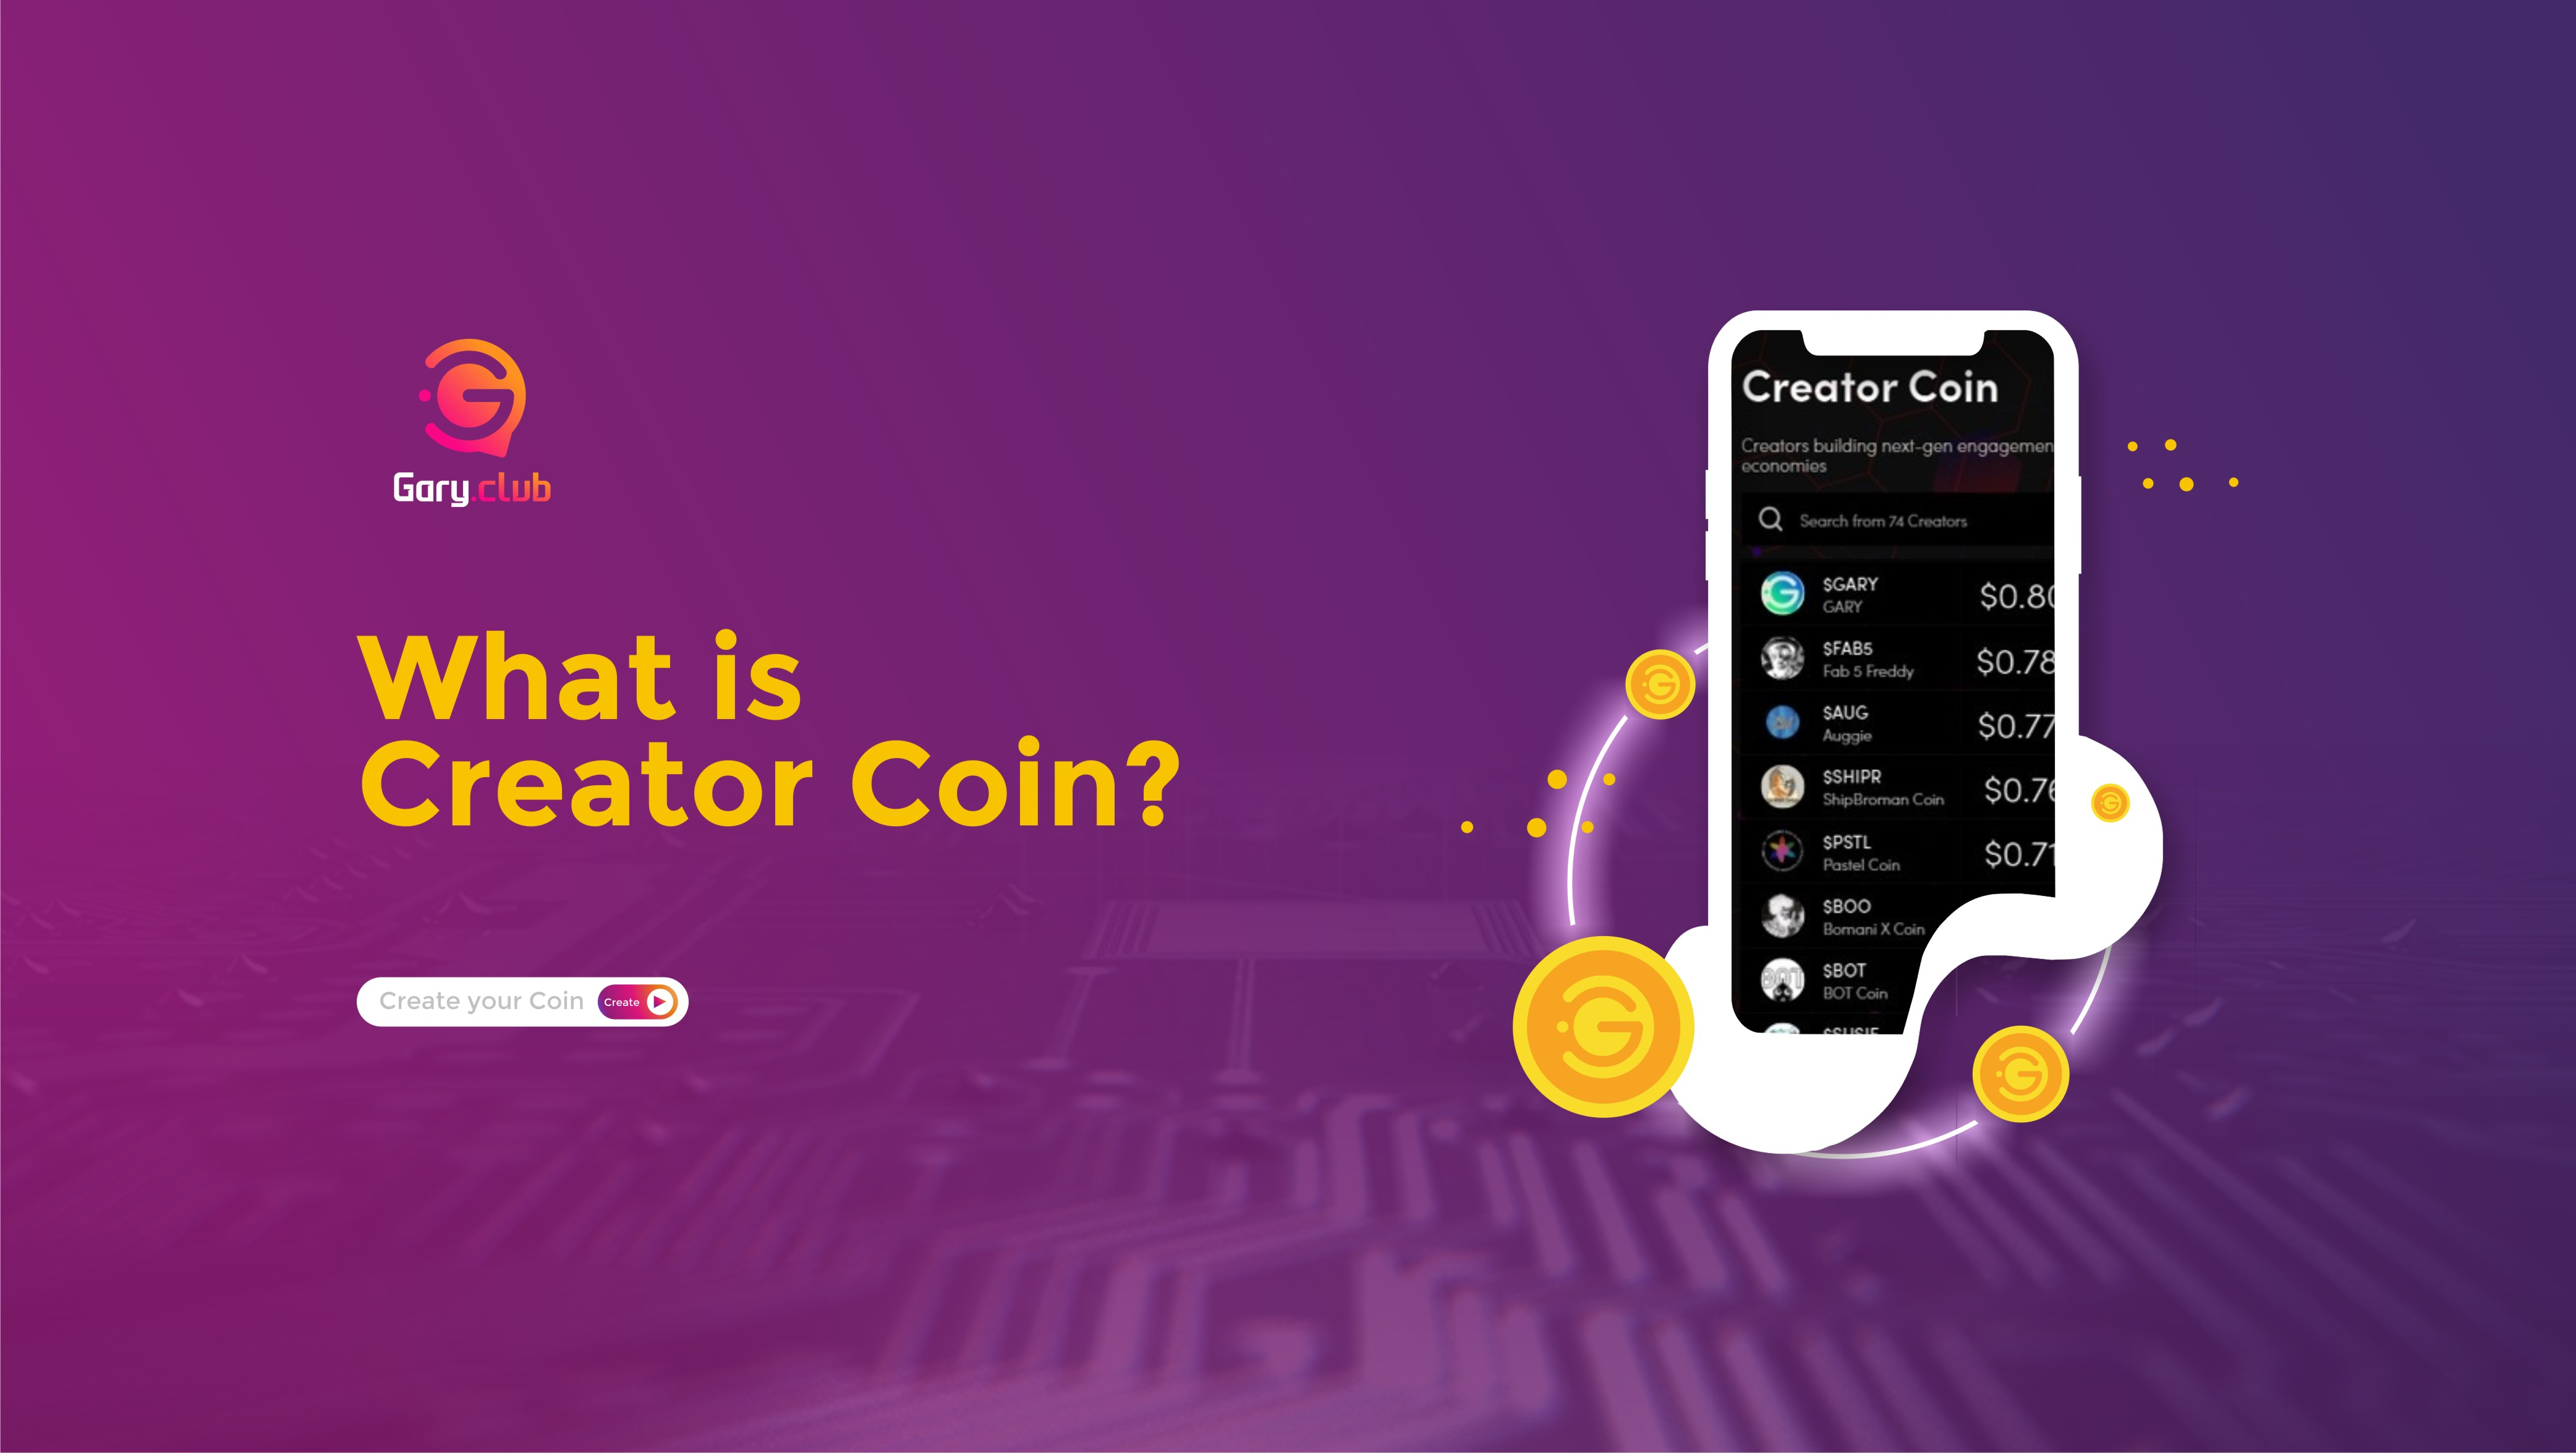 What Are Creator Coins?